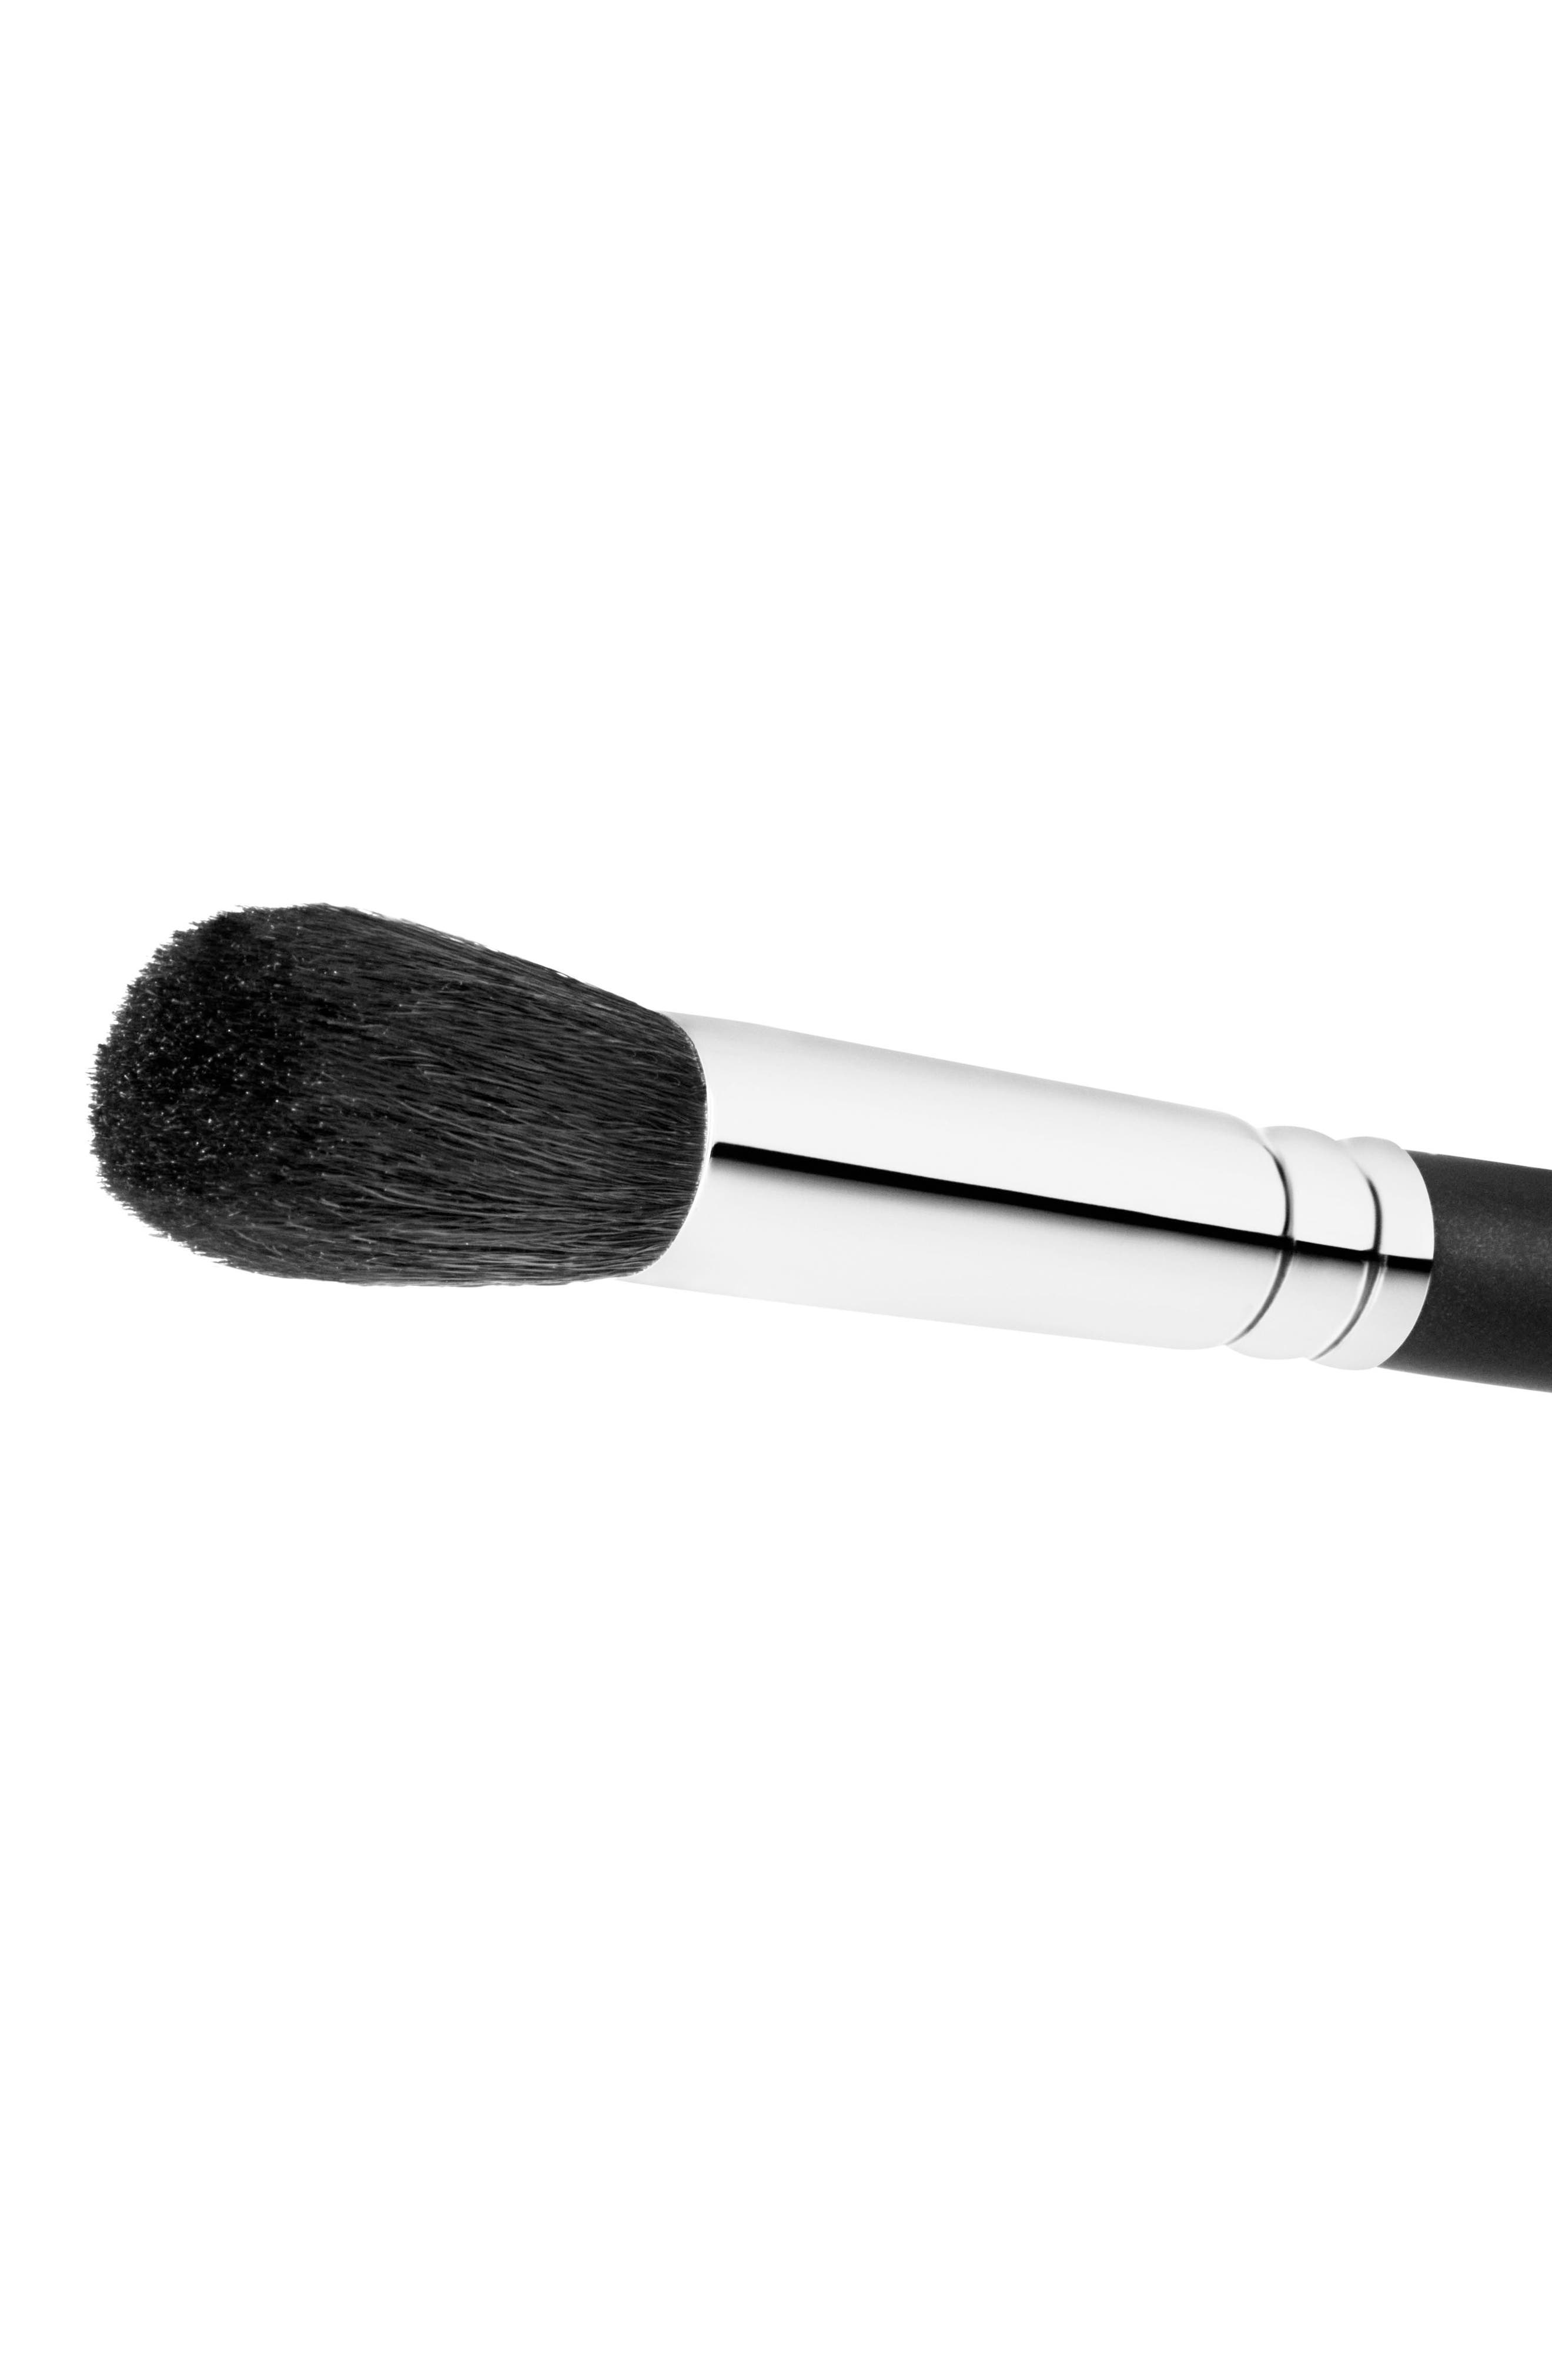 MAC 109S Synthetic Small Contour Brush,                             Alternate thumbnail 2, color,                             No Color